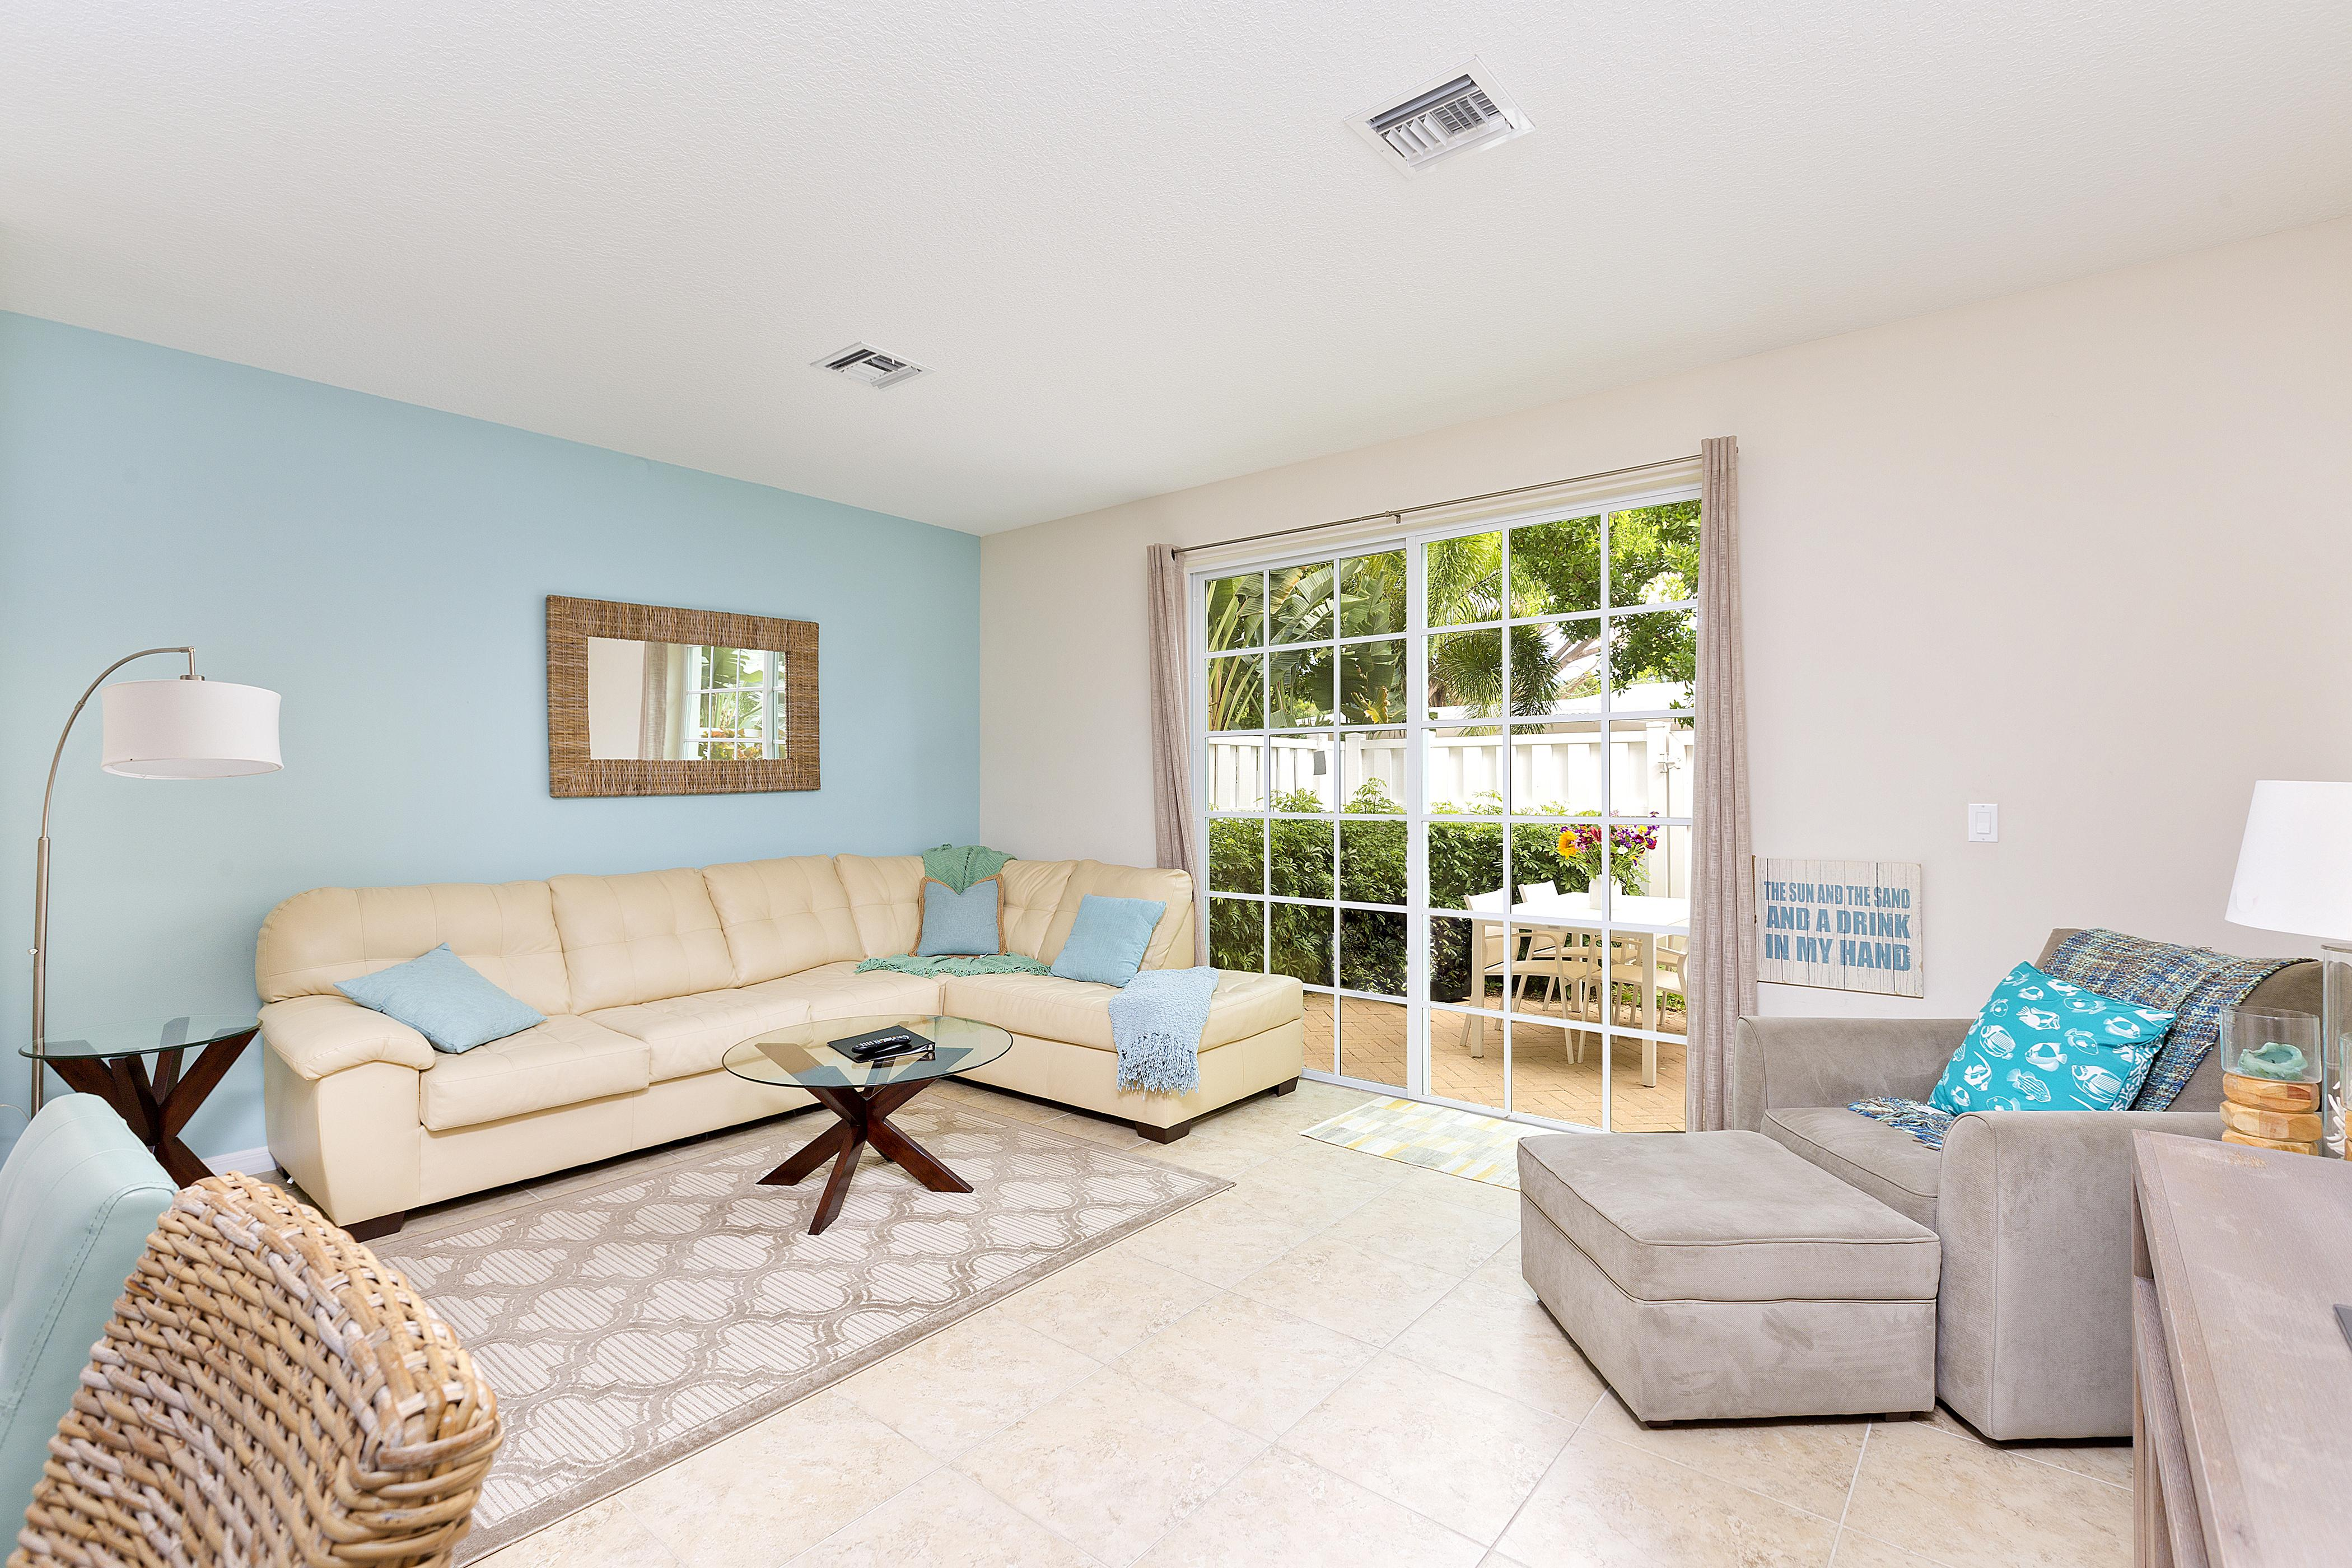 Property Image 0 - Endearing Townhouse with Communal Pool And Hot Tub